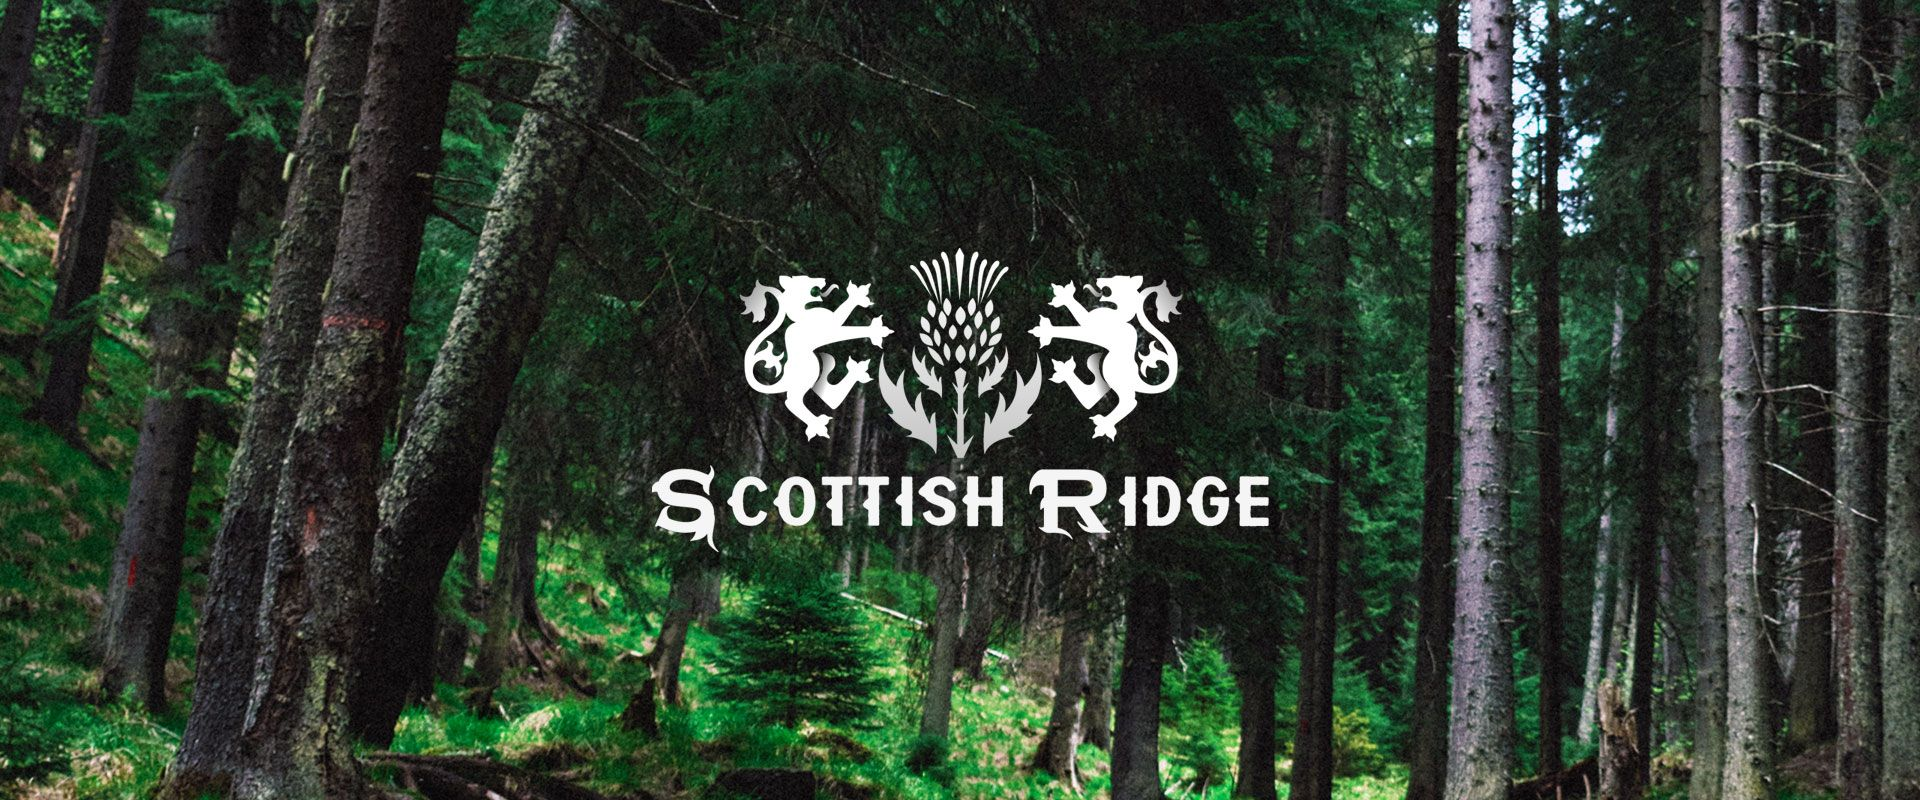 Scottish Ridge Banner